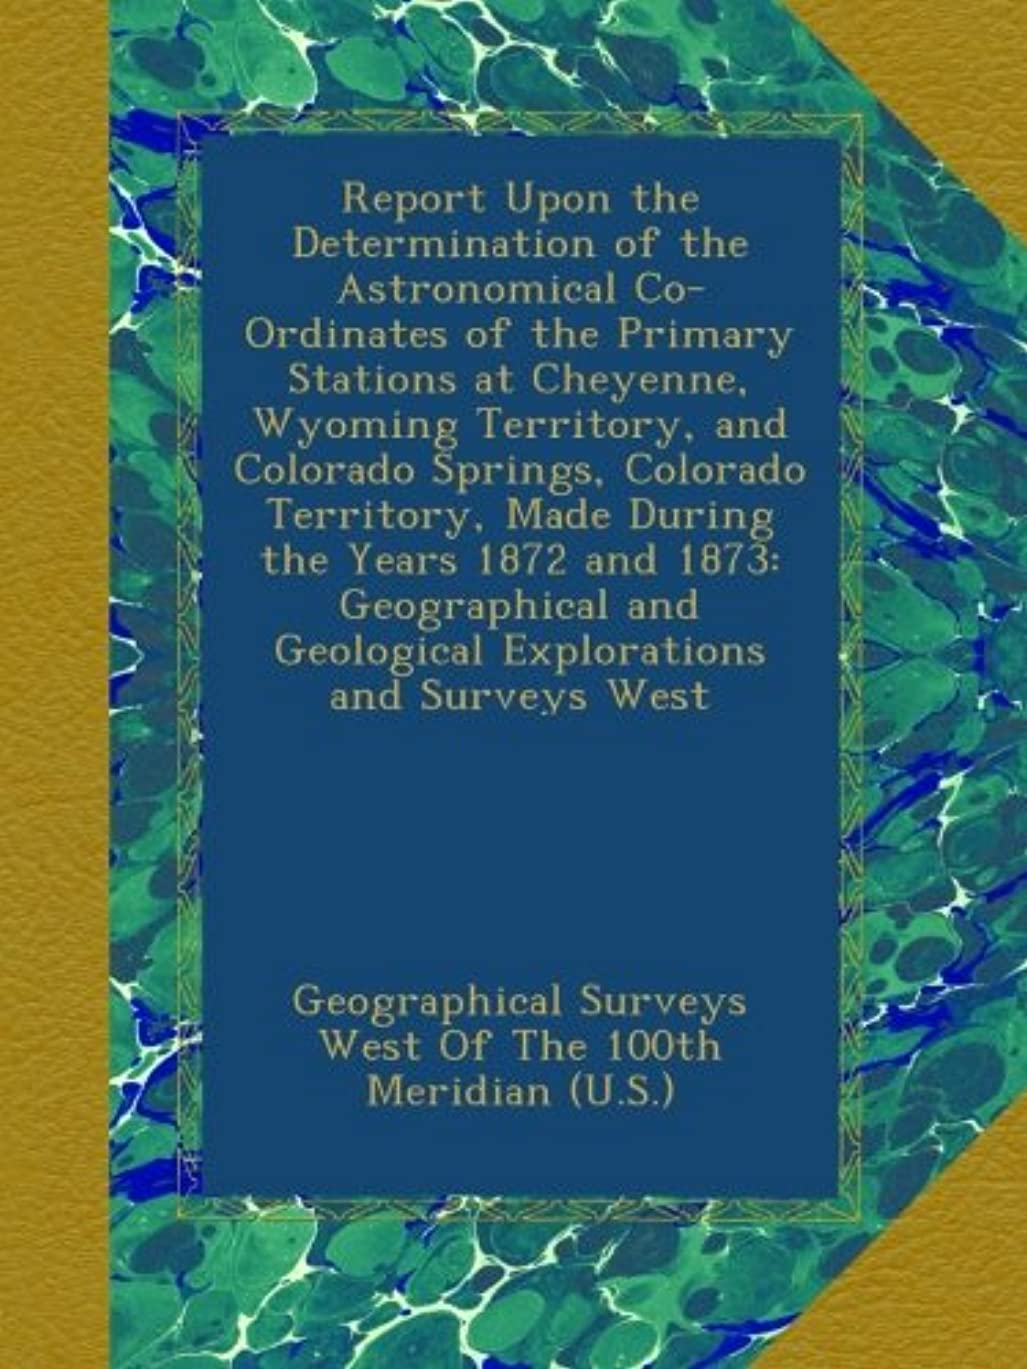 学部傷つきやすい登録するReport Upon the Determination of the Astronomical Co-Ordinates of the Primary Stations at Cheyenne, Wyoming Territory, and Colorado Springs, Colorado Territory, Made During the Years 1872 and 1873: Geographical and Geological Explorations and Surveys West